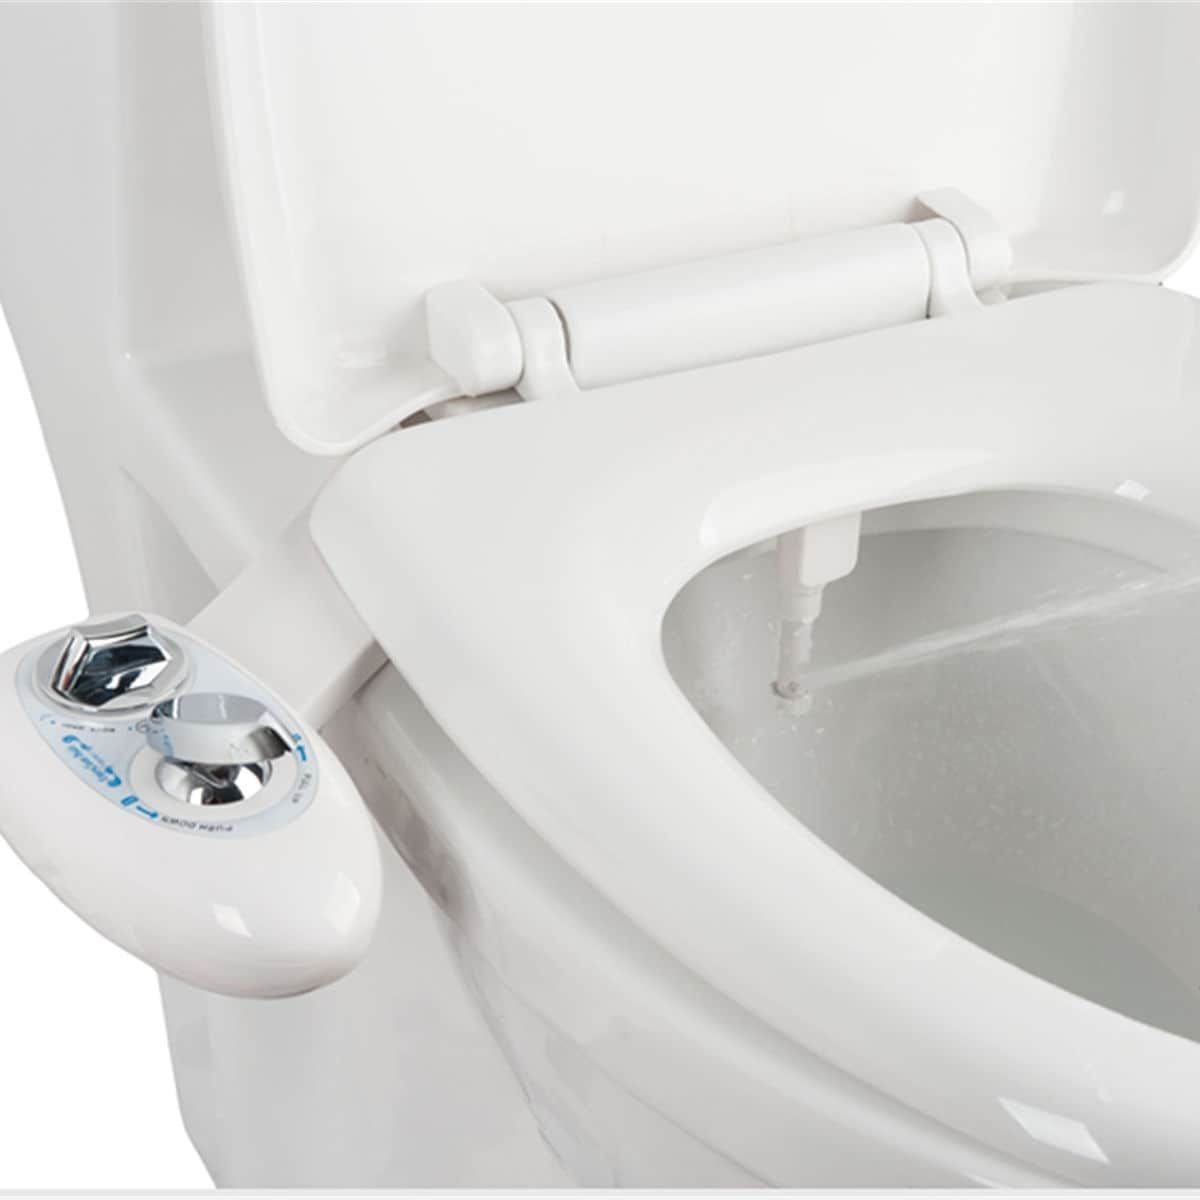 Costway Fresh Water Spray Non Electric Mechanical Bidet Toilet